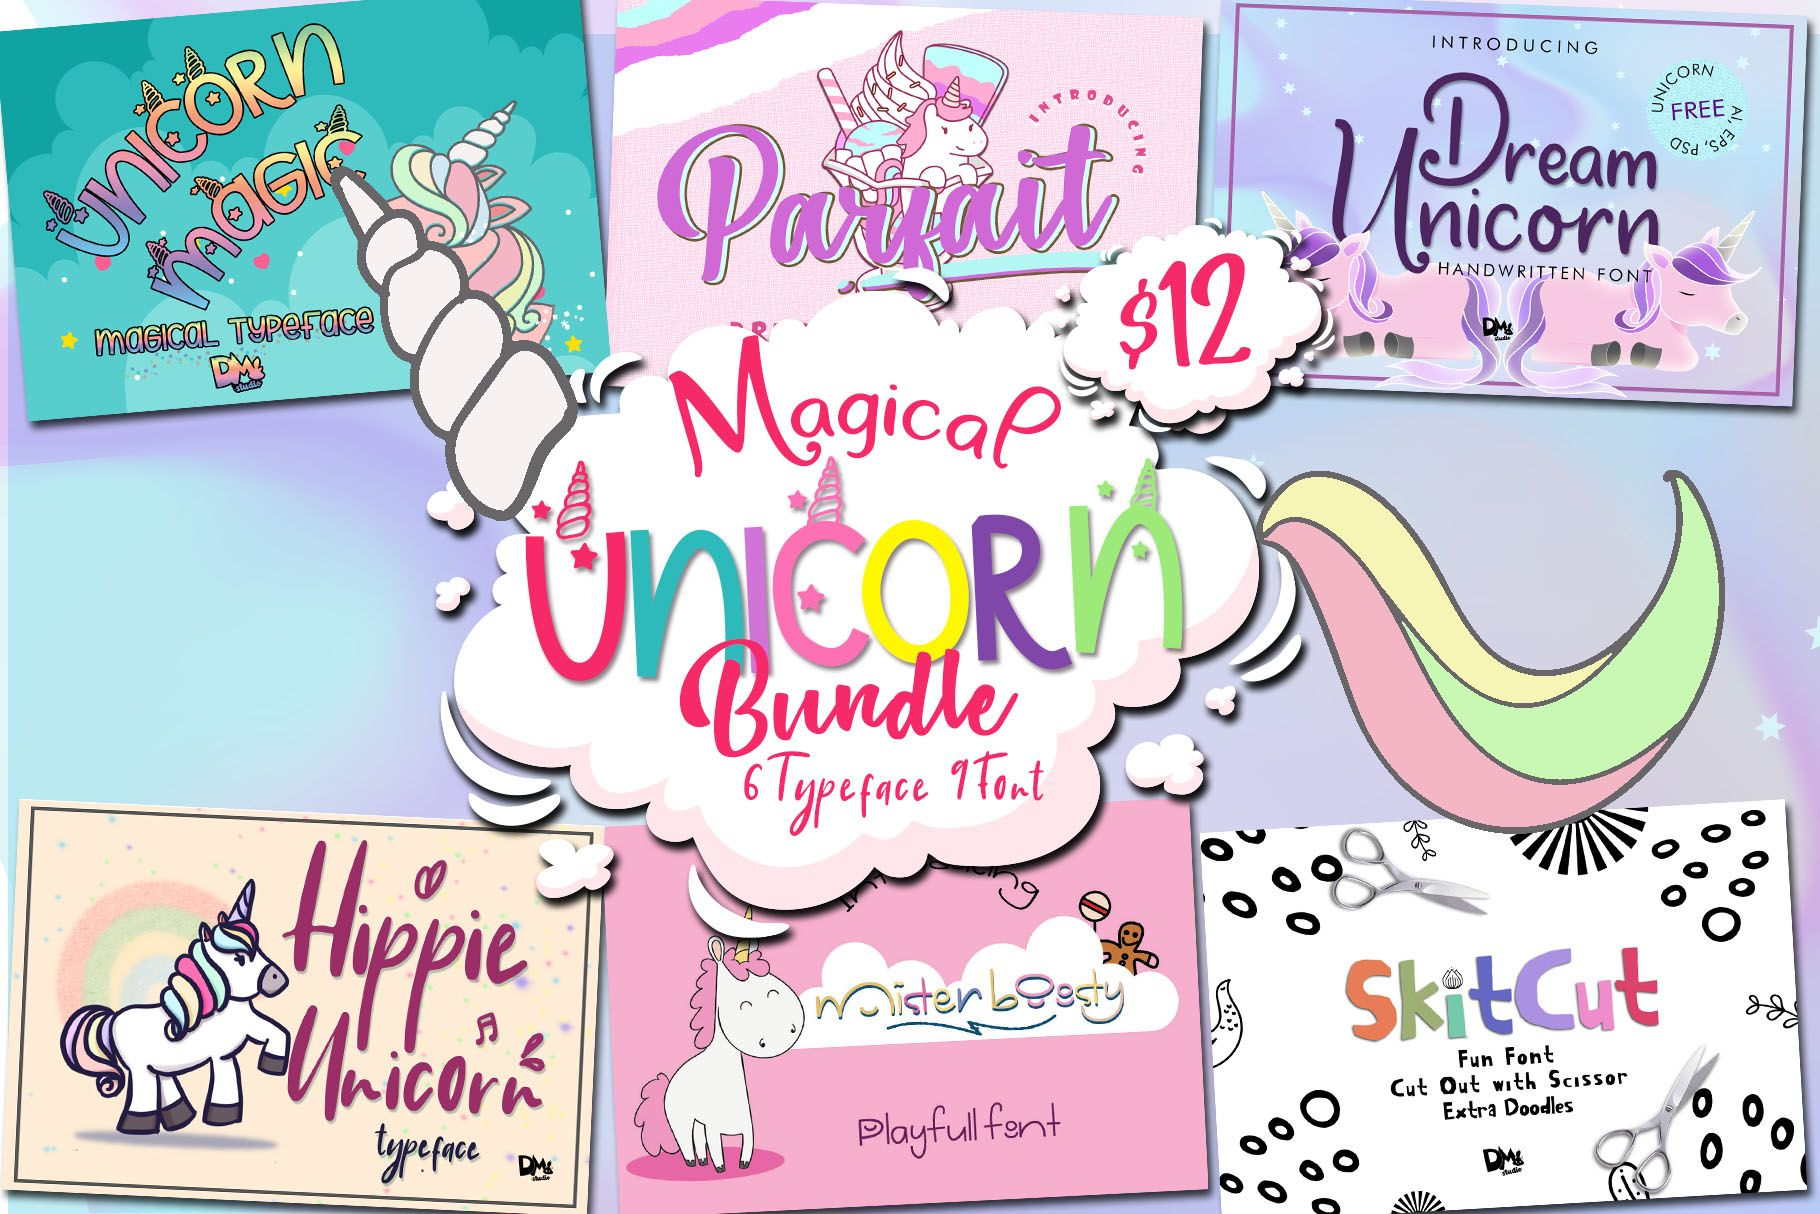 Magical Unicorn Bundle (With images) Christmas fonts